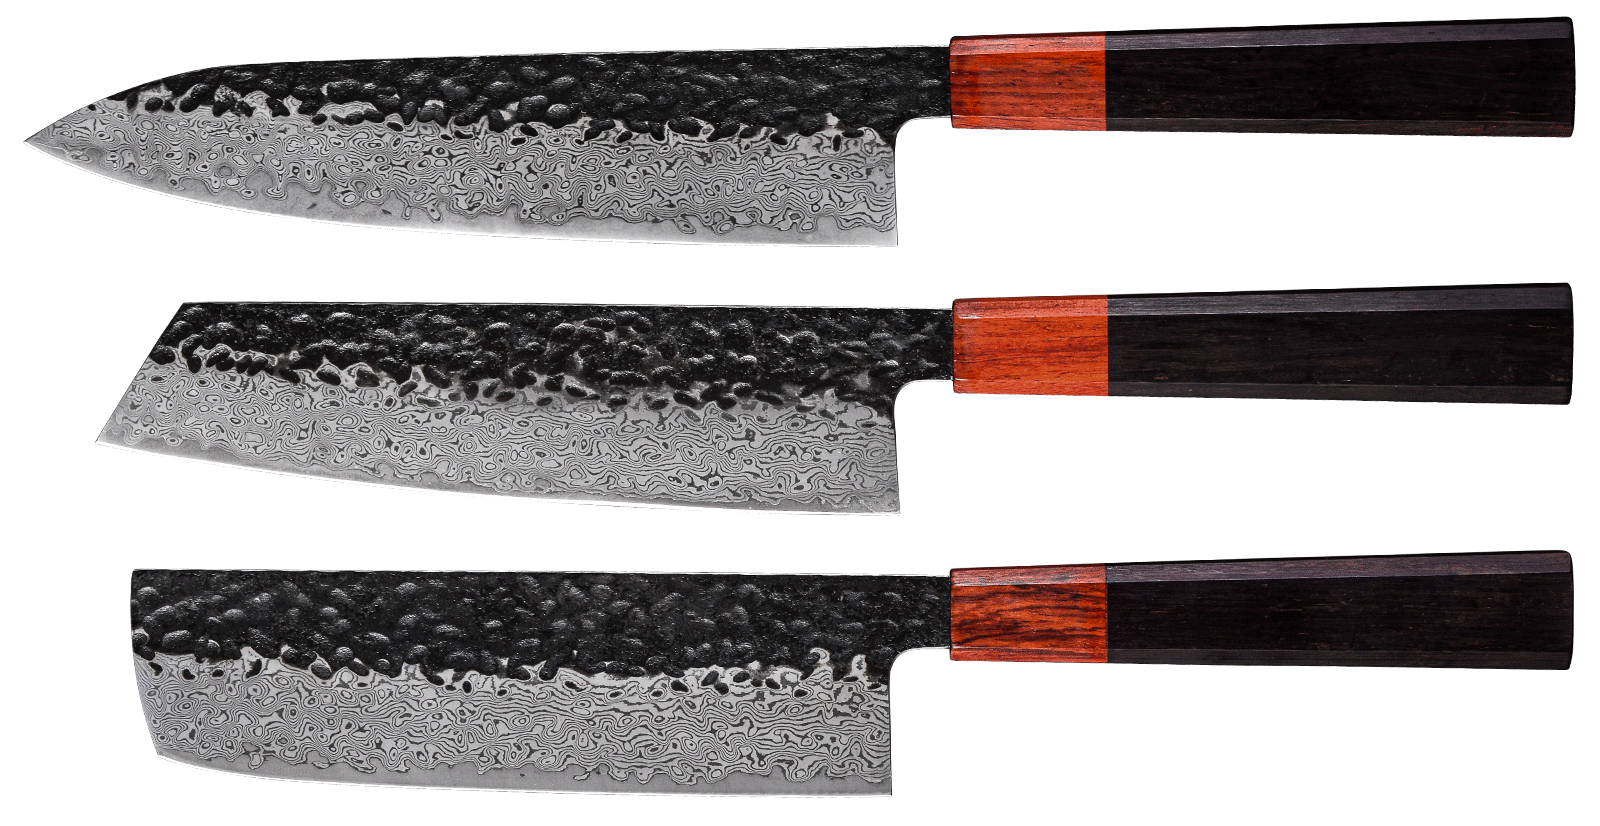 This 8 inches chef knife is made of Premium 67-layer Damascus Stainless Steel, Cutting core at 60+ Rockwell hardness,16-18 degrees cutting edge,the edge is super sharp, extraordinary performance and perfect grain, 67 layers of premium Damascus Stainless Steel layers ensure exceptional strength, durability and stain resistance. it has a strong toughness, it would never rust or fade, can be kept in a long time sharp,Whether chopping meat, fish, vegetables, or fruit each piece is sliced with precision. No squishing. No tearing. This knife guarantees efficient and fast slicing and chopping every single time,this 8 inches Damascus chef's knife,can almost meet all challenge of kitchen.